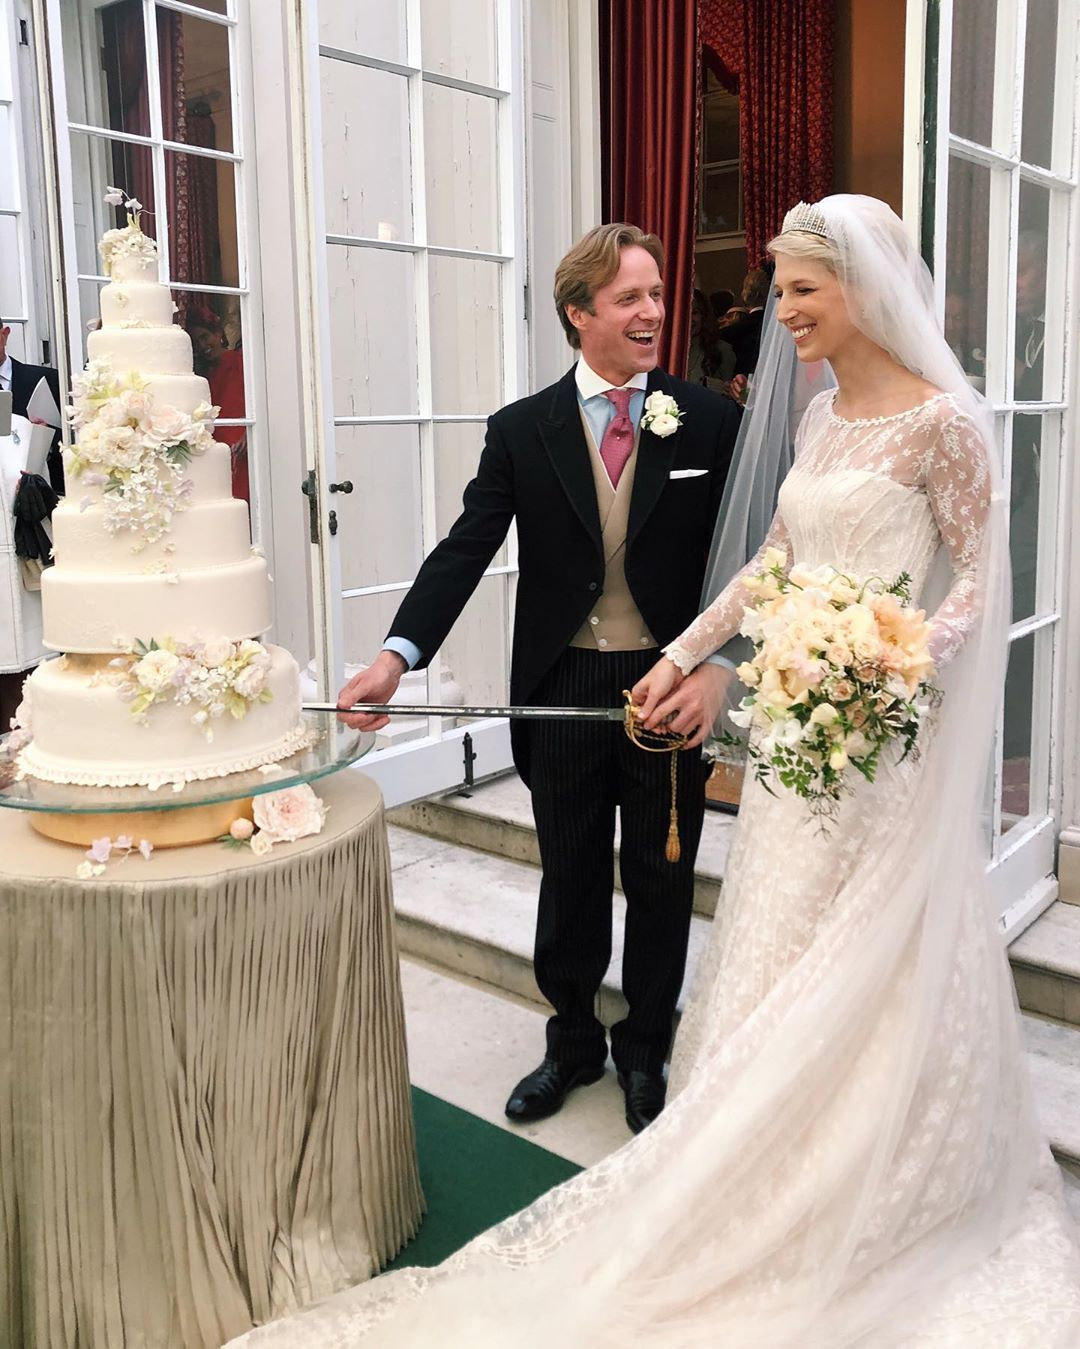 Lady Gabriella Windsor S Royal Wedding Speech See Inside Reception The Cake More Hello Royal Wedding Cake Royal Brides Royal Wedding Dress